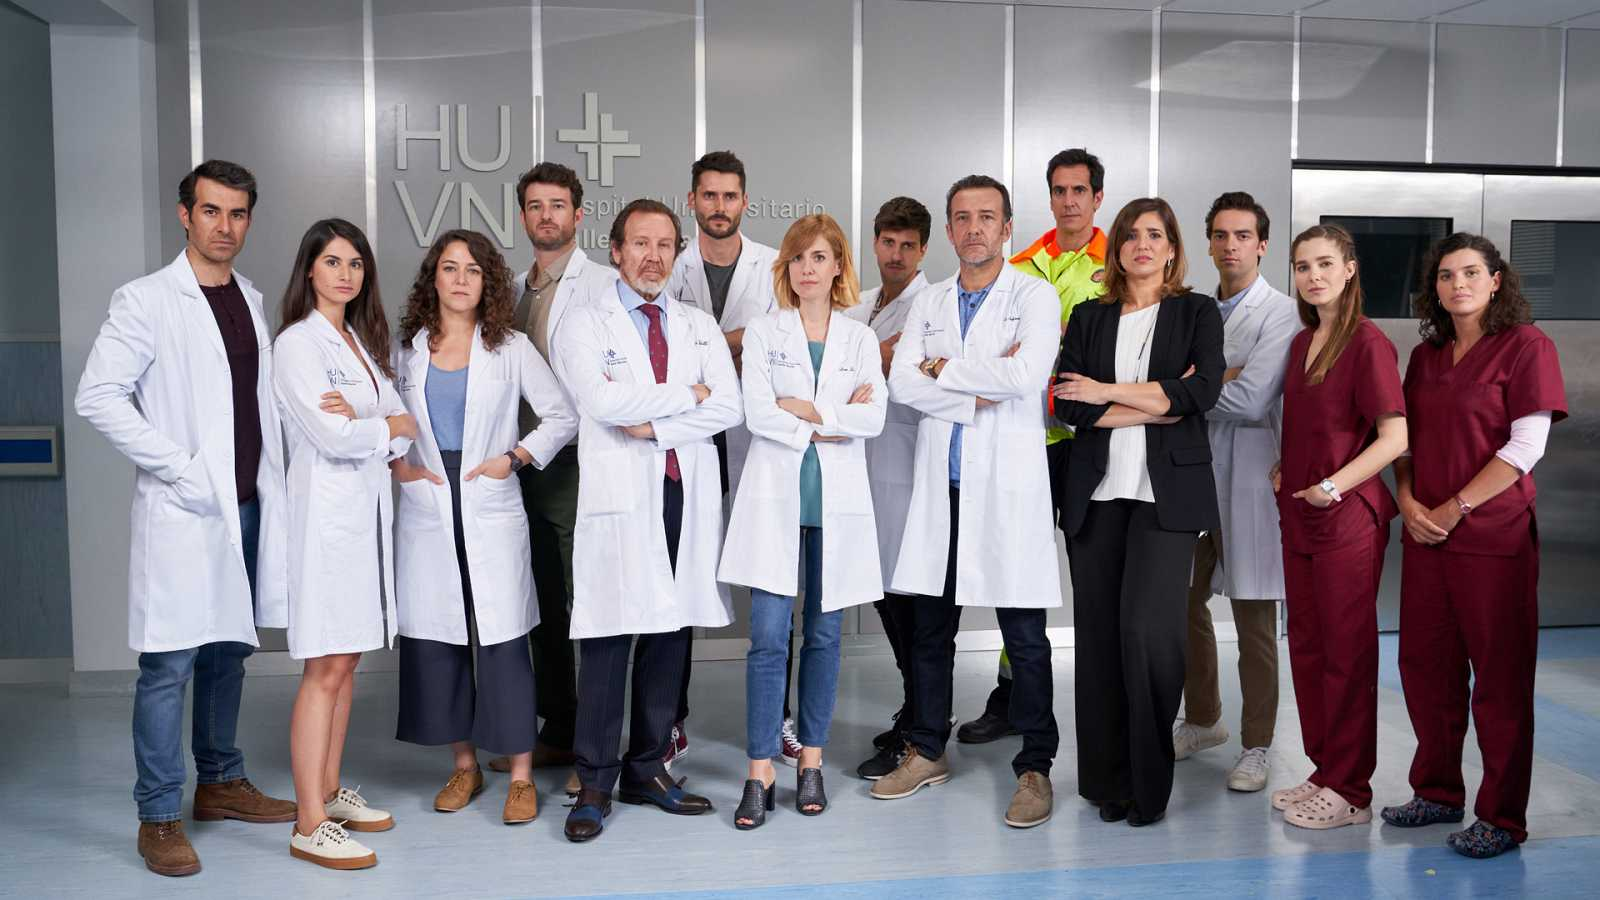 La 1 estrena 'Hospital Valle Norte'